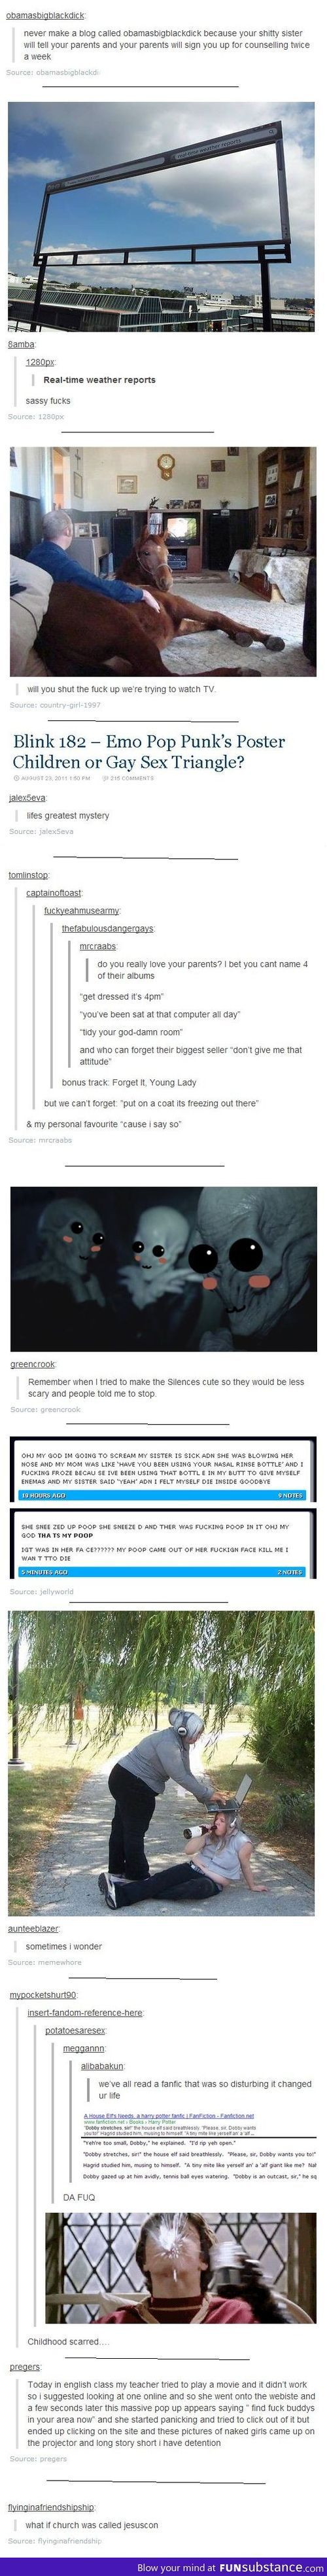 Oh god, the one with Harry Potter. I'm scarred after that.